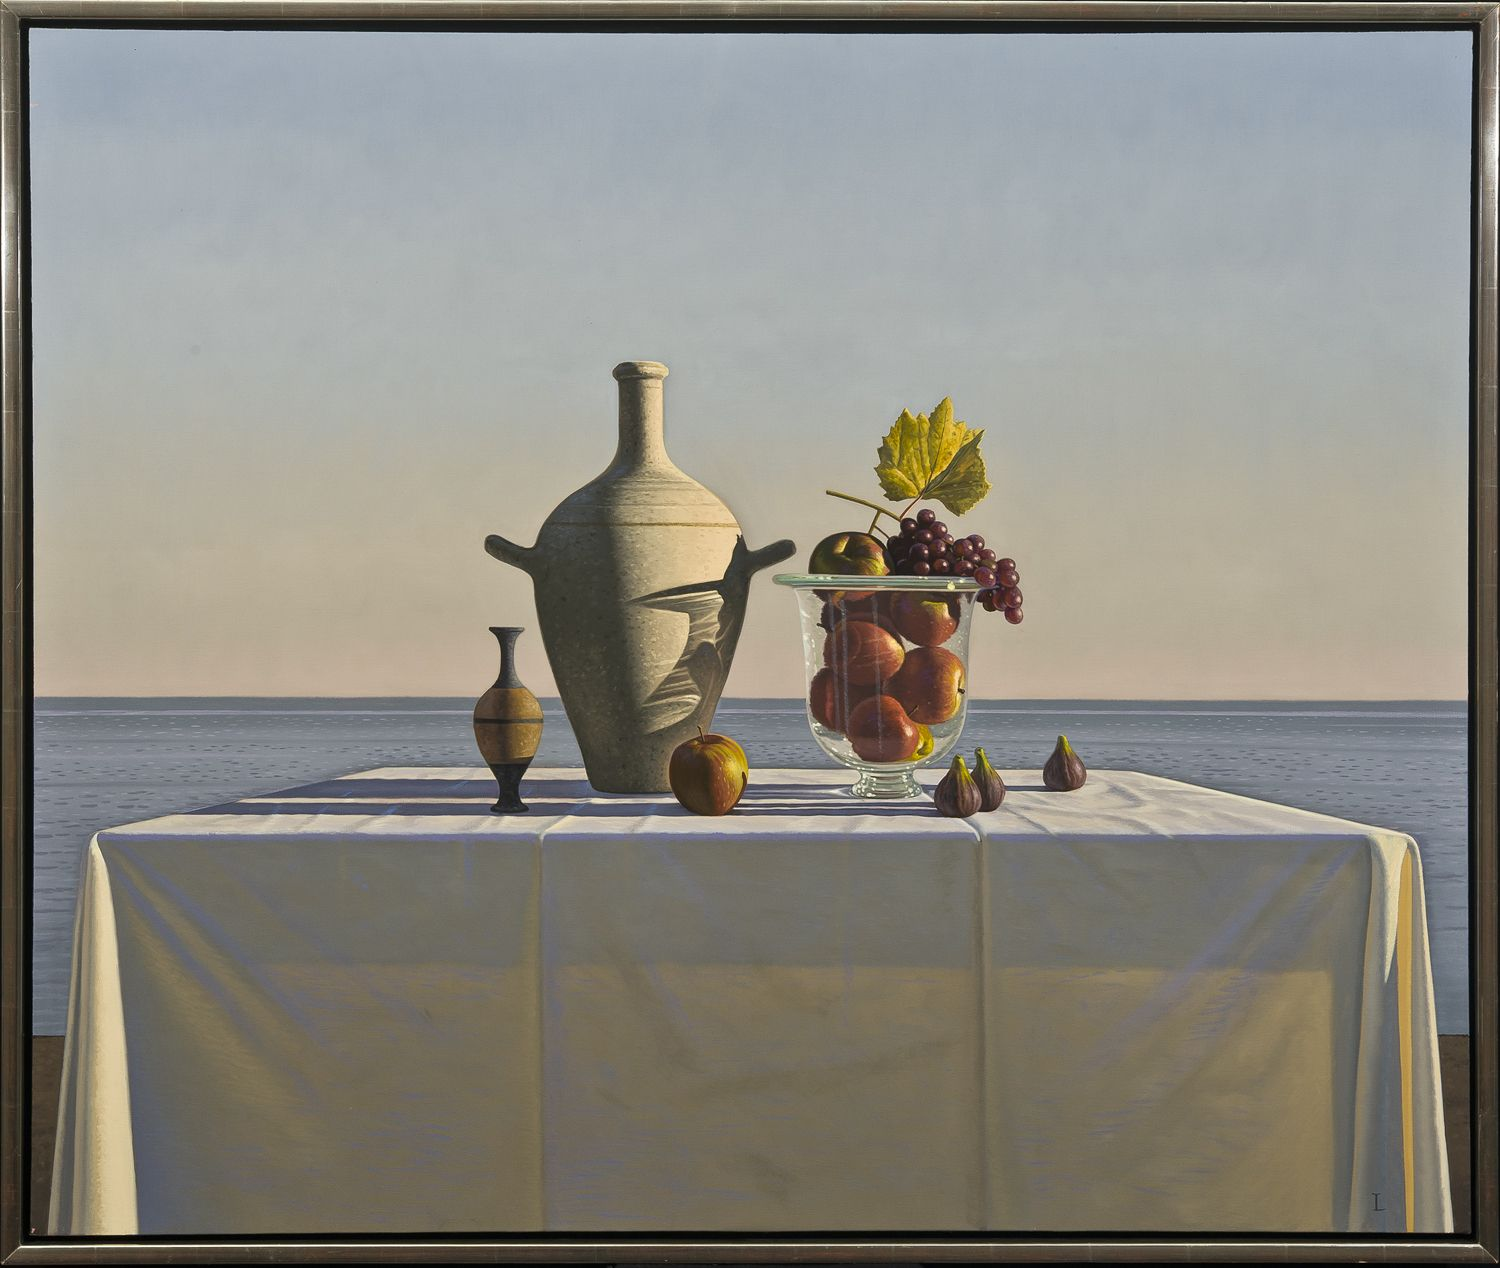 Still Life with Fruit, 2011, Oil on canvas, 40 x 48 in.